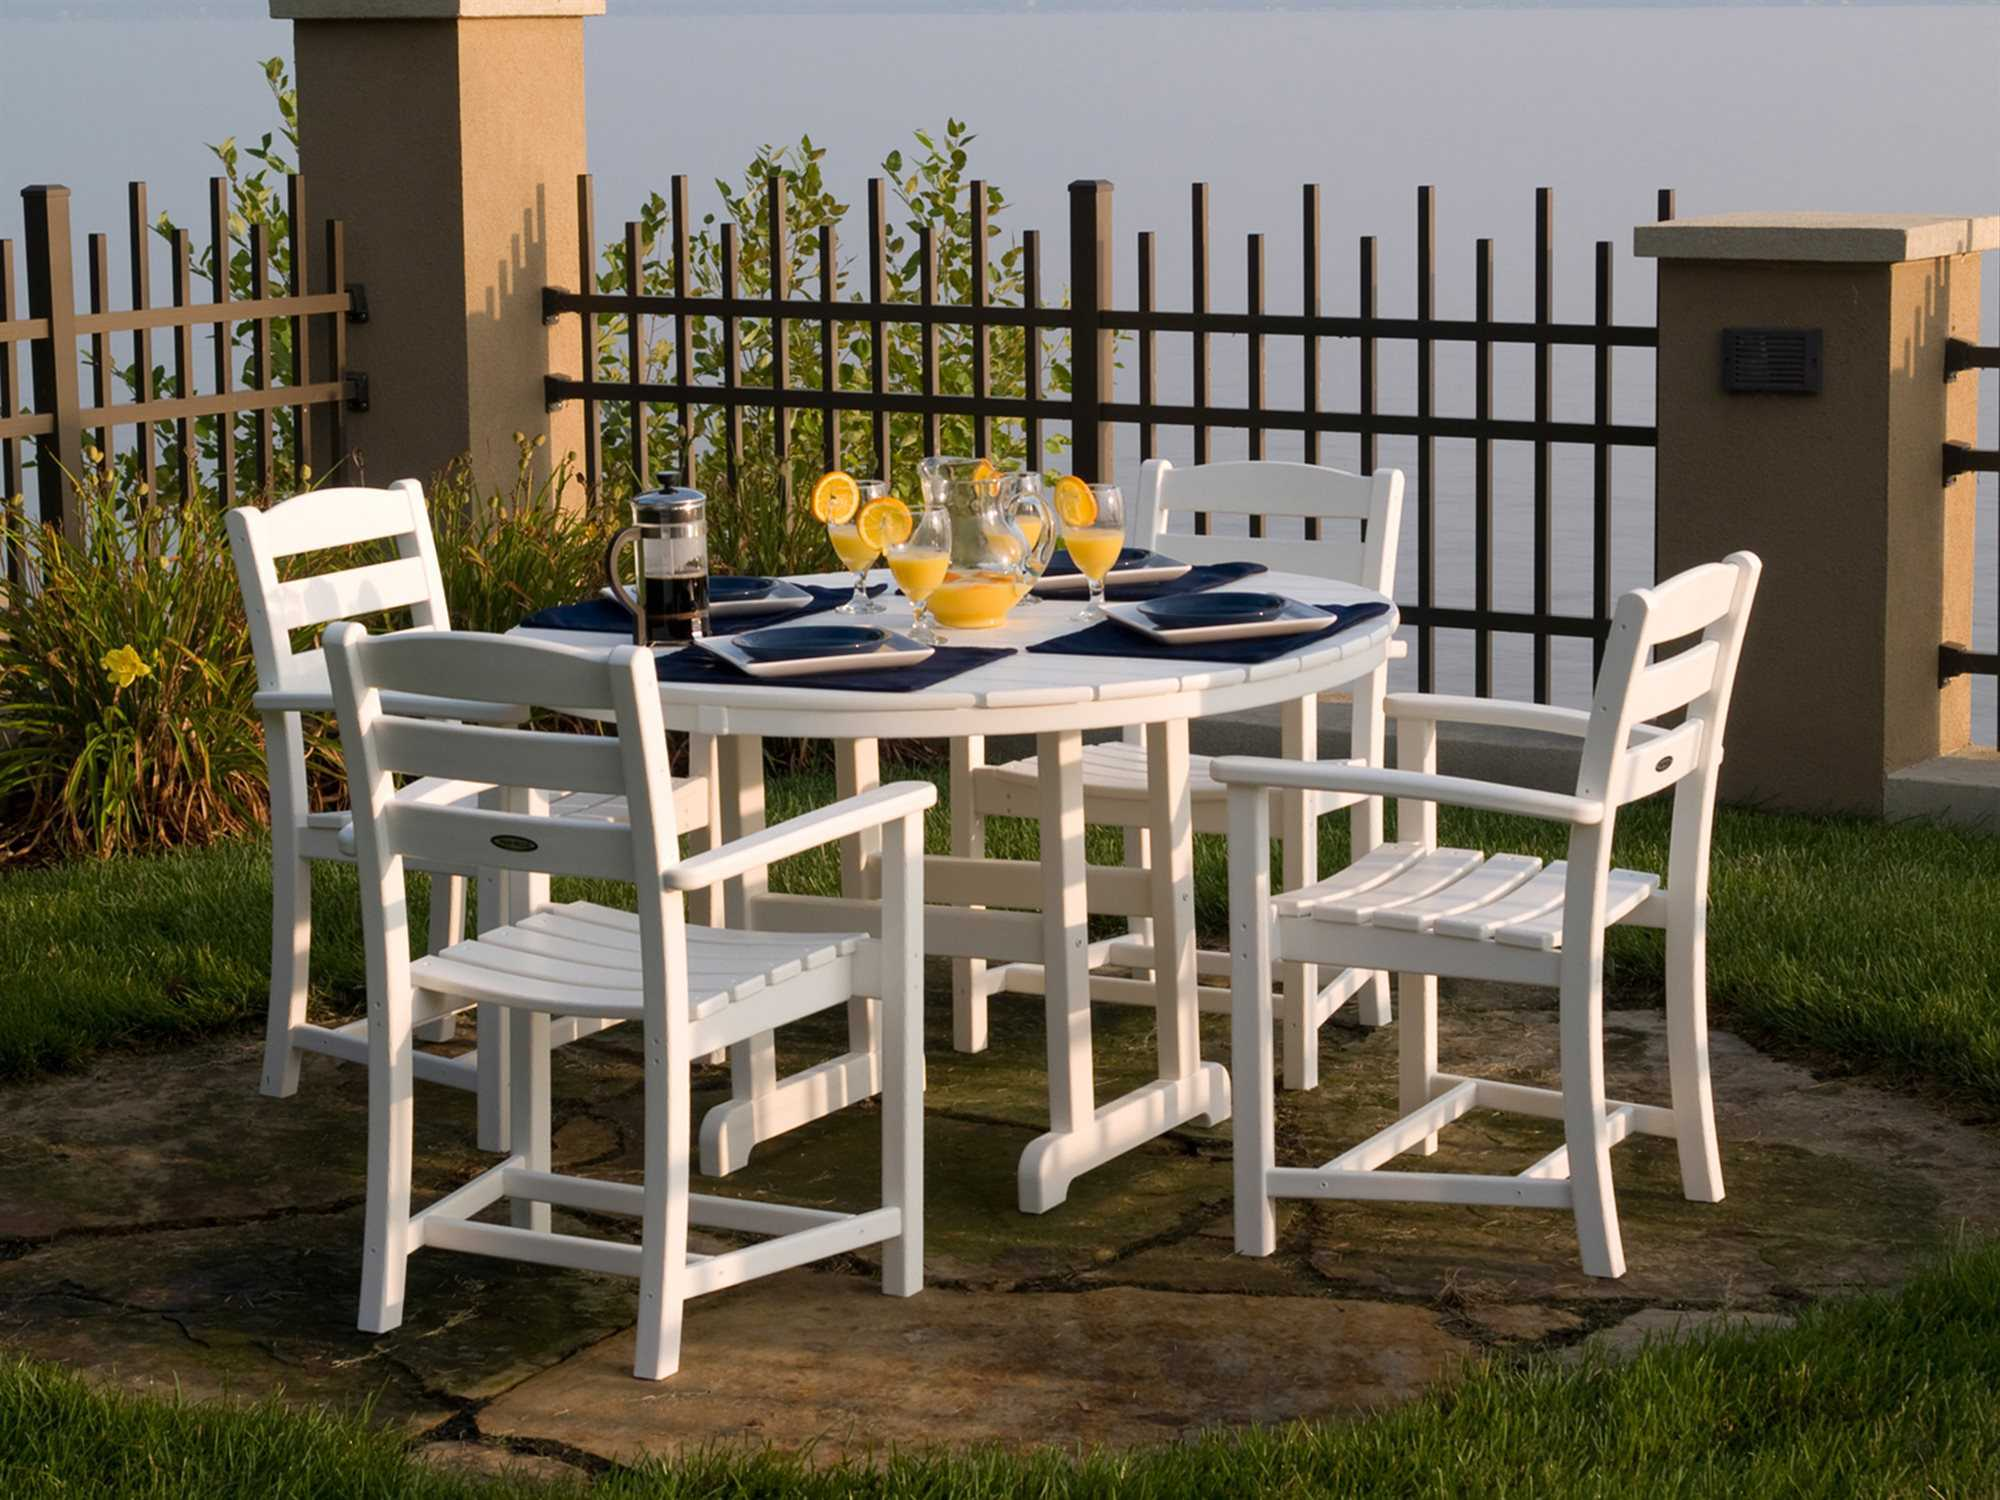 Polywood 174 La Casa Cafe Recycled Plastic Dining Set